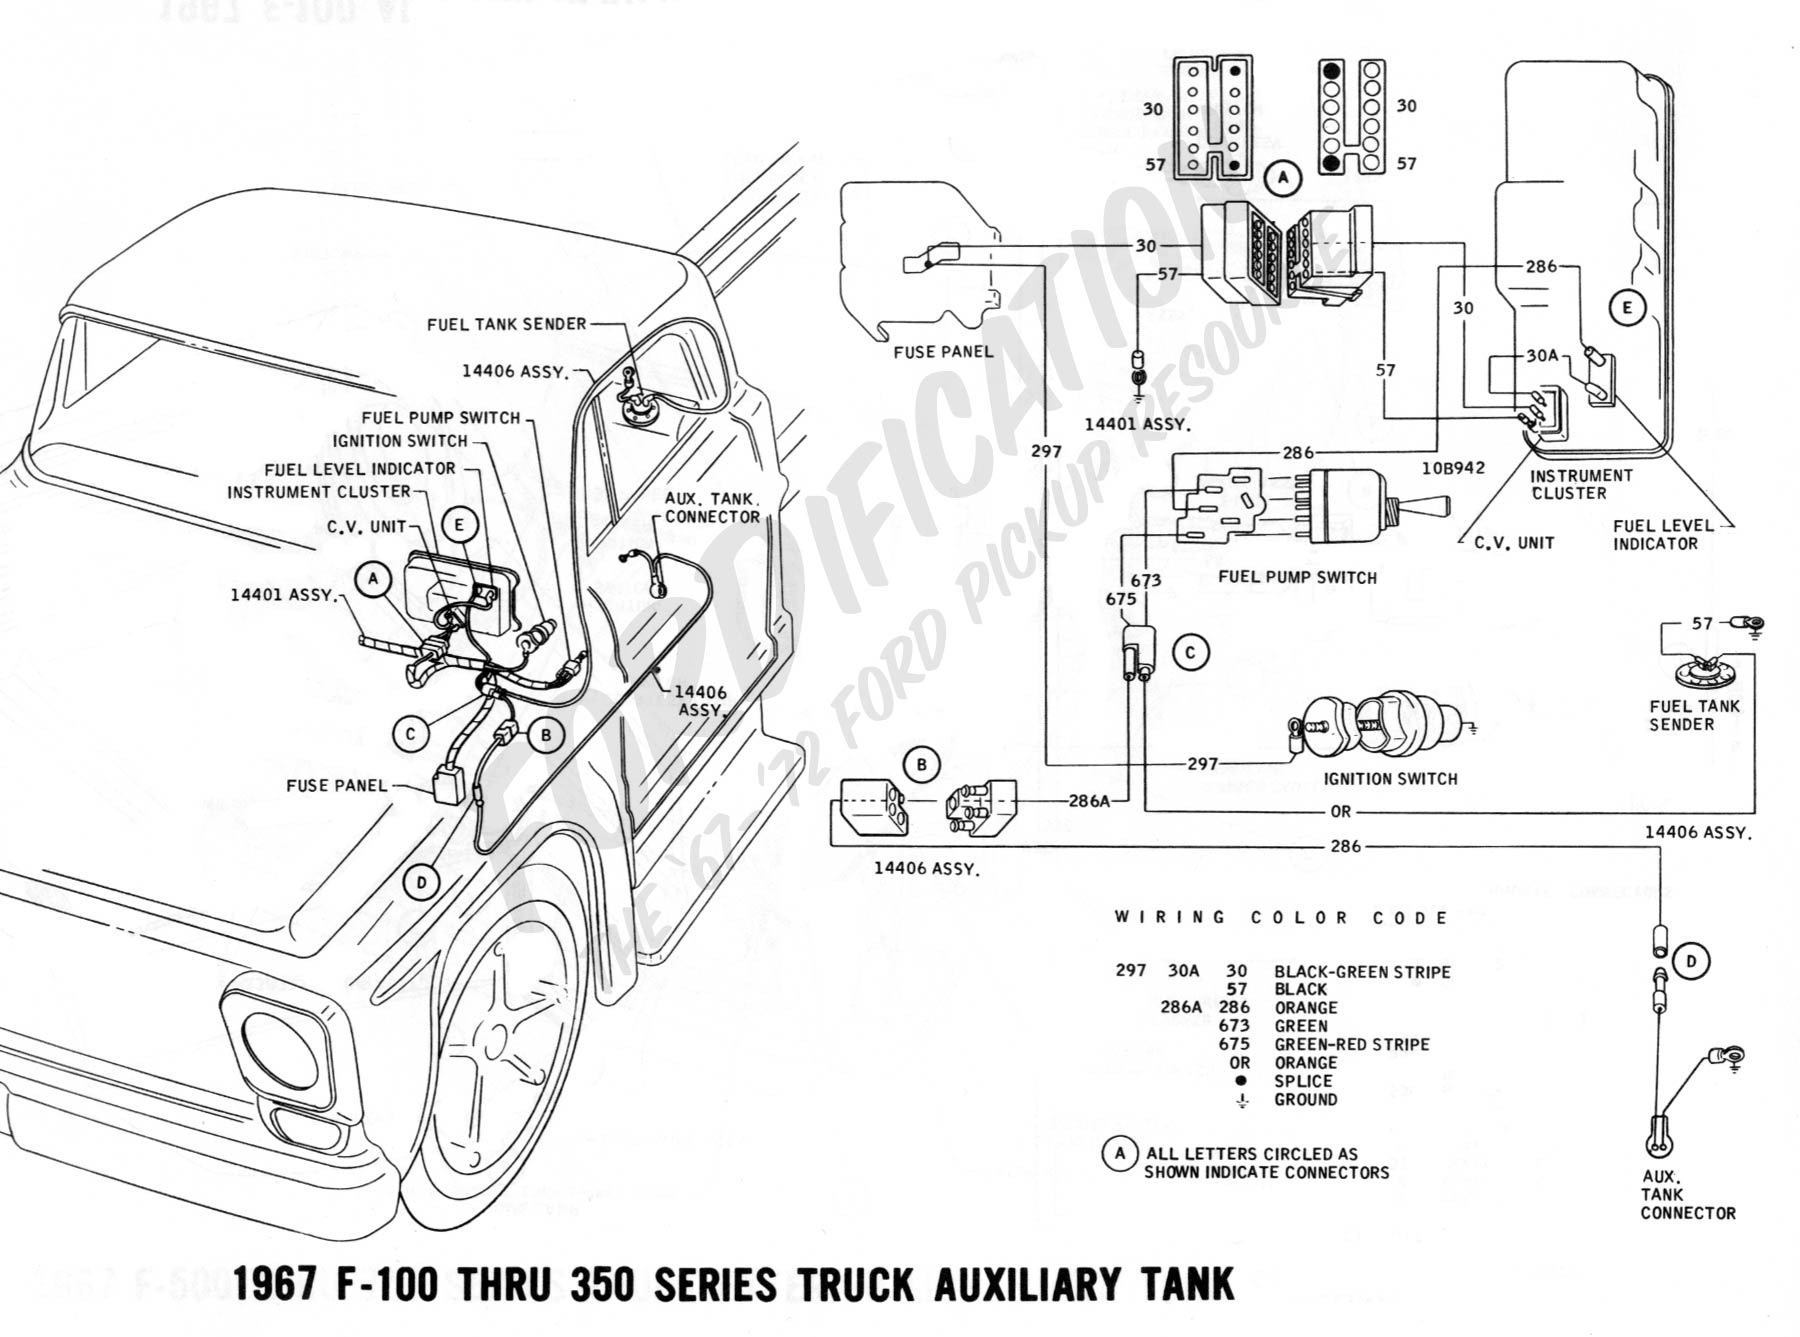 ford truck technical drawings and schematics section h wiring1967 f 100 thru f 350 auxiliary fuel tank